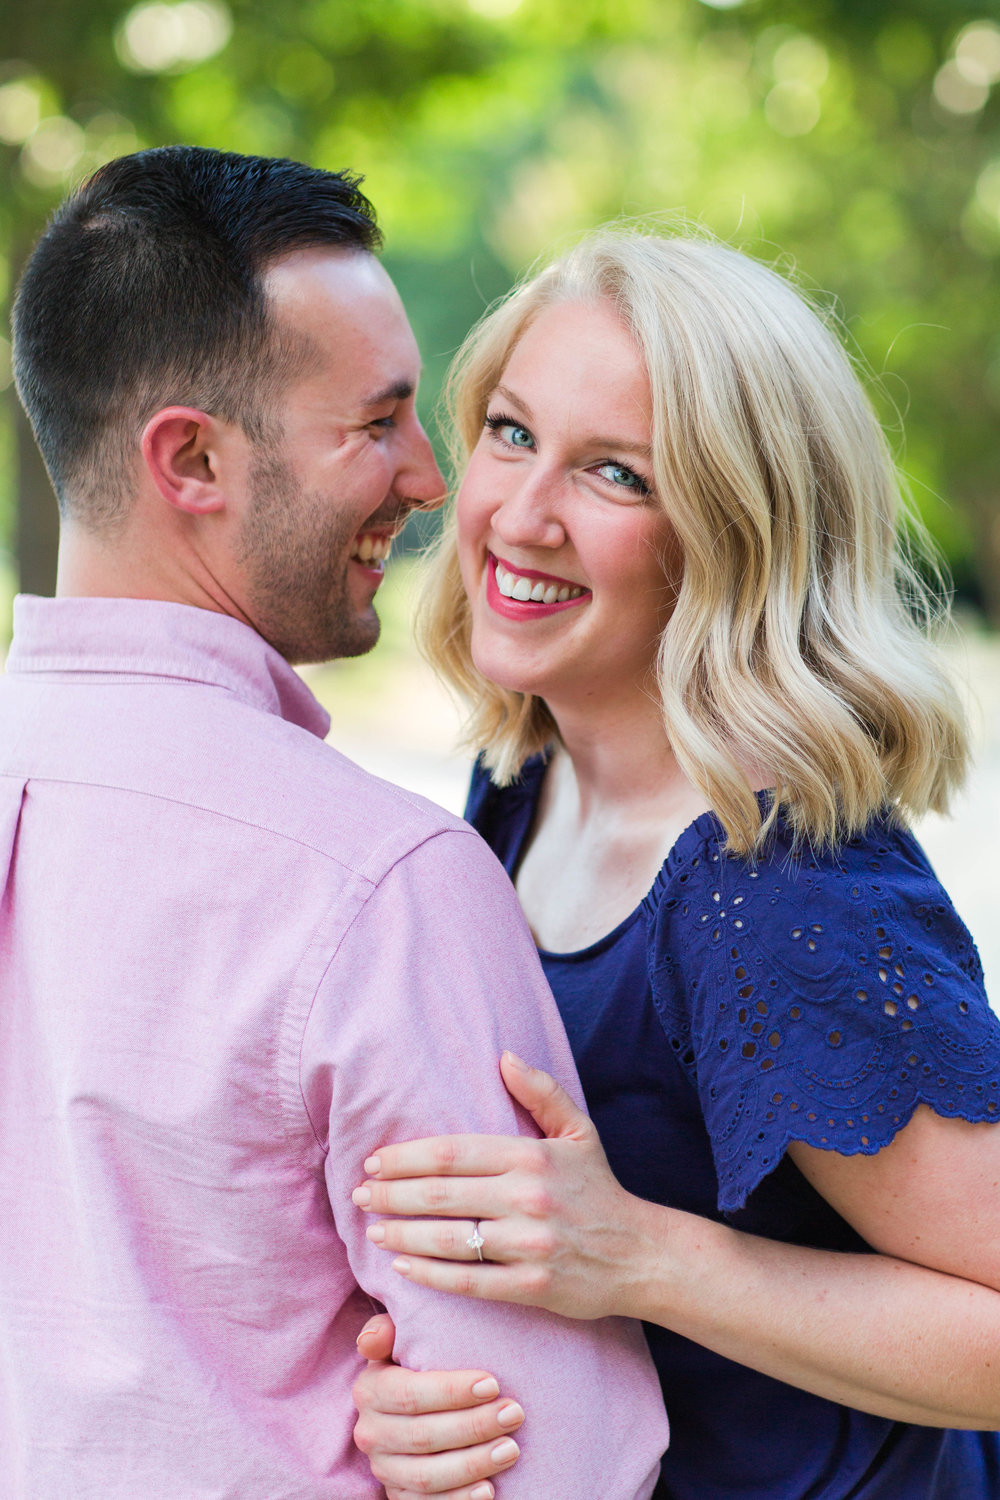 Blake and Whitney_Engagement_159.jpg